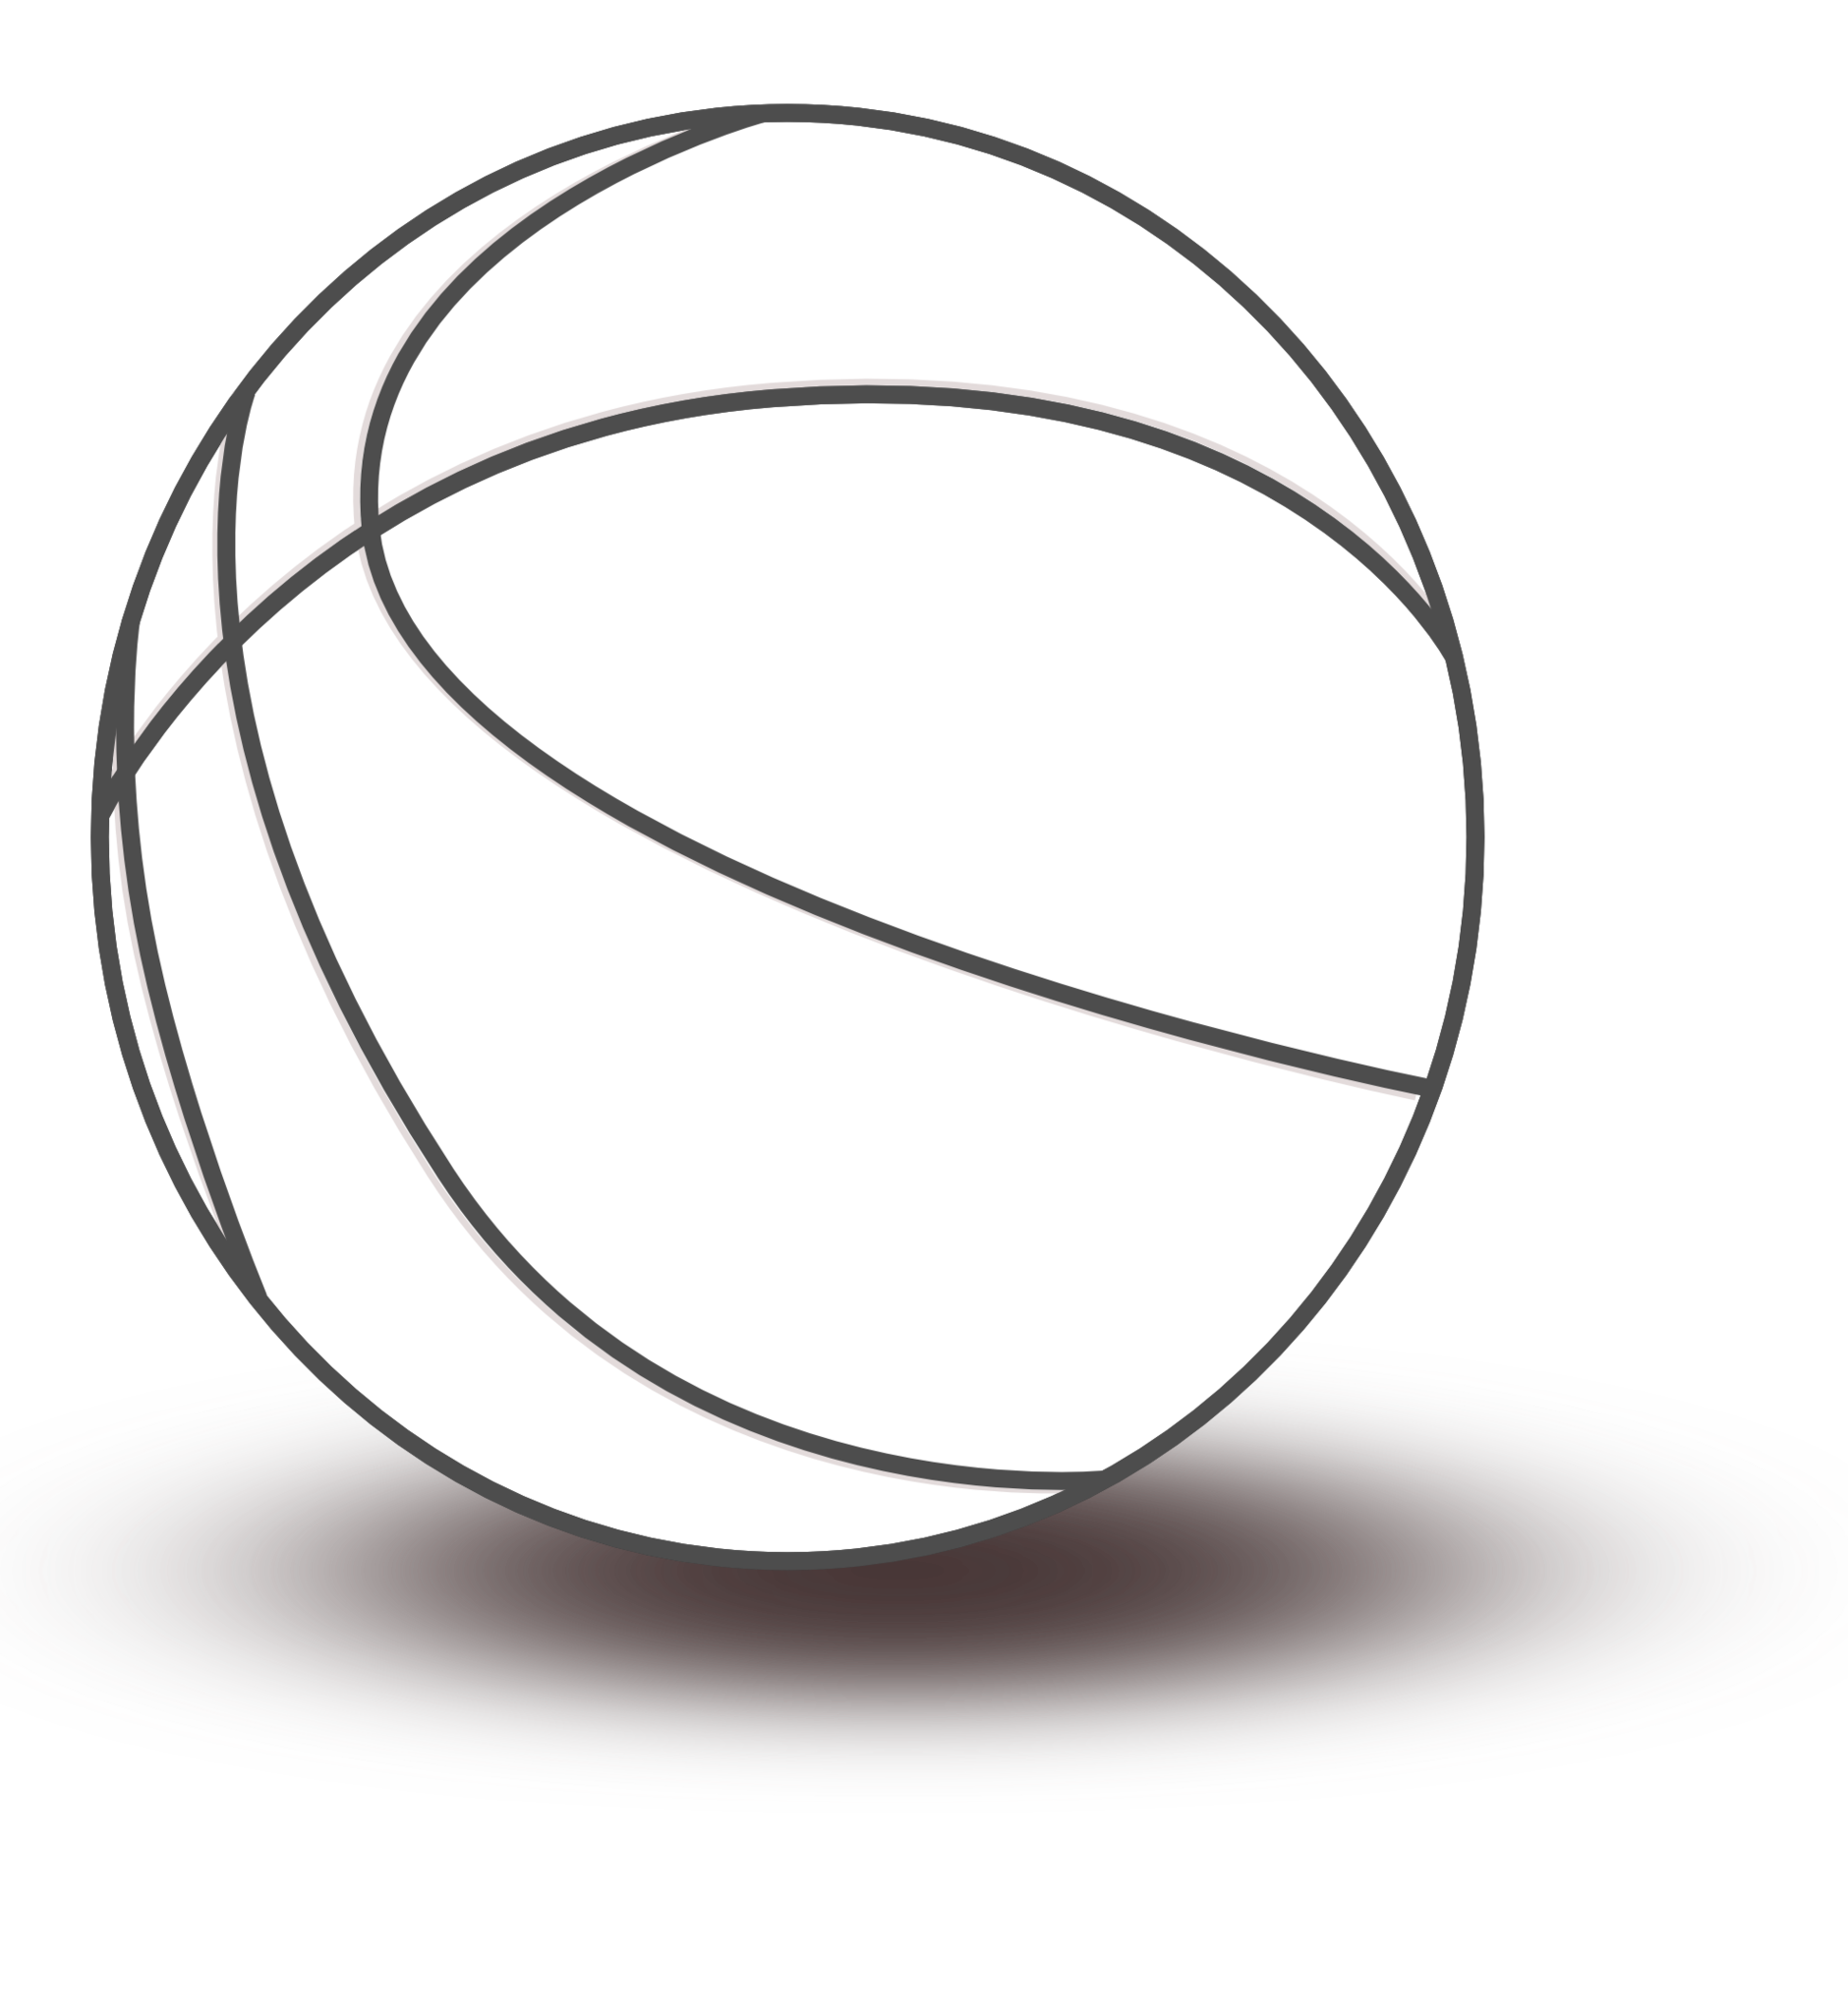 1880x2050 Basketball Black And White House Clipart Black And White 4